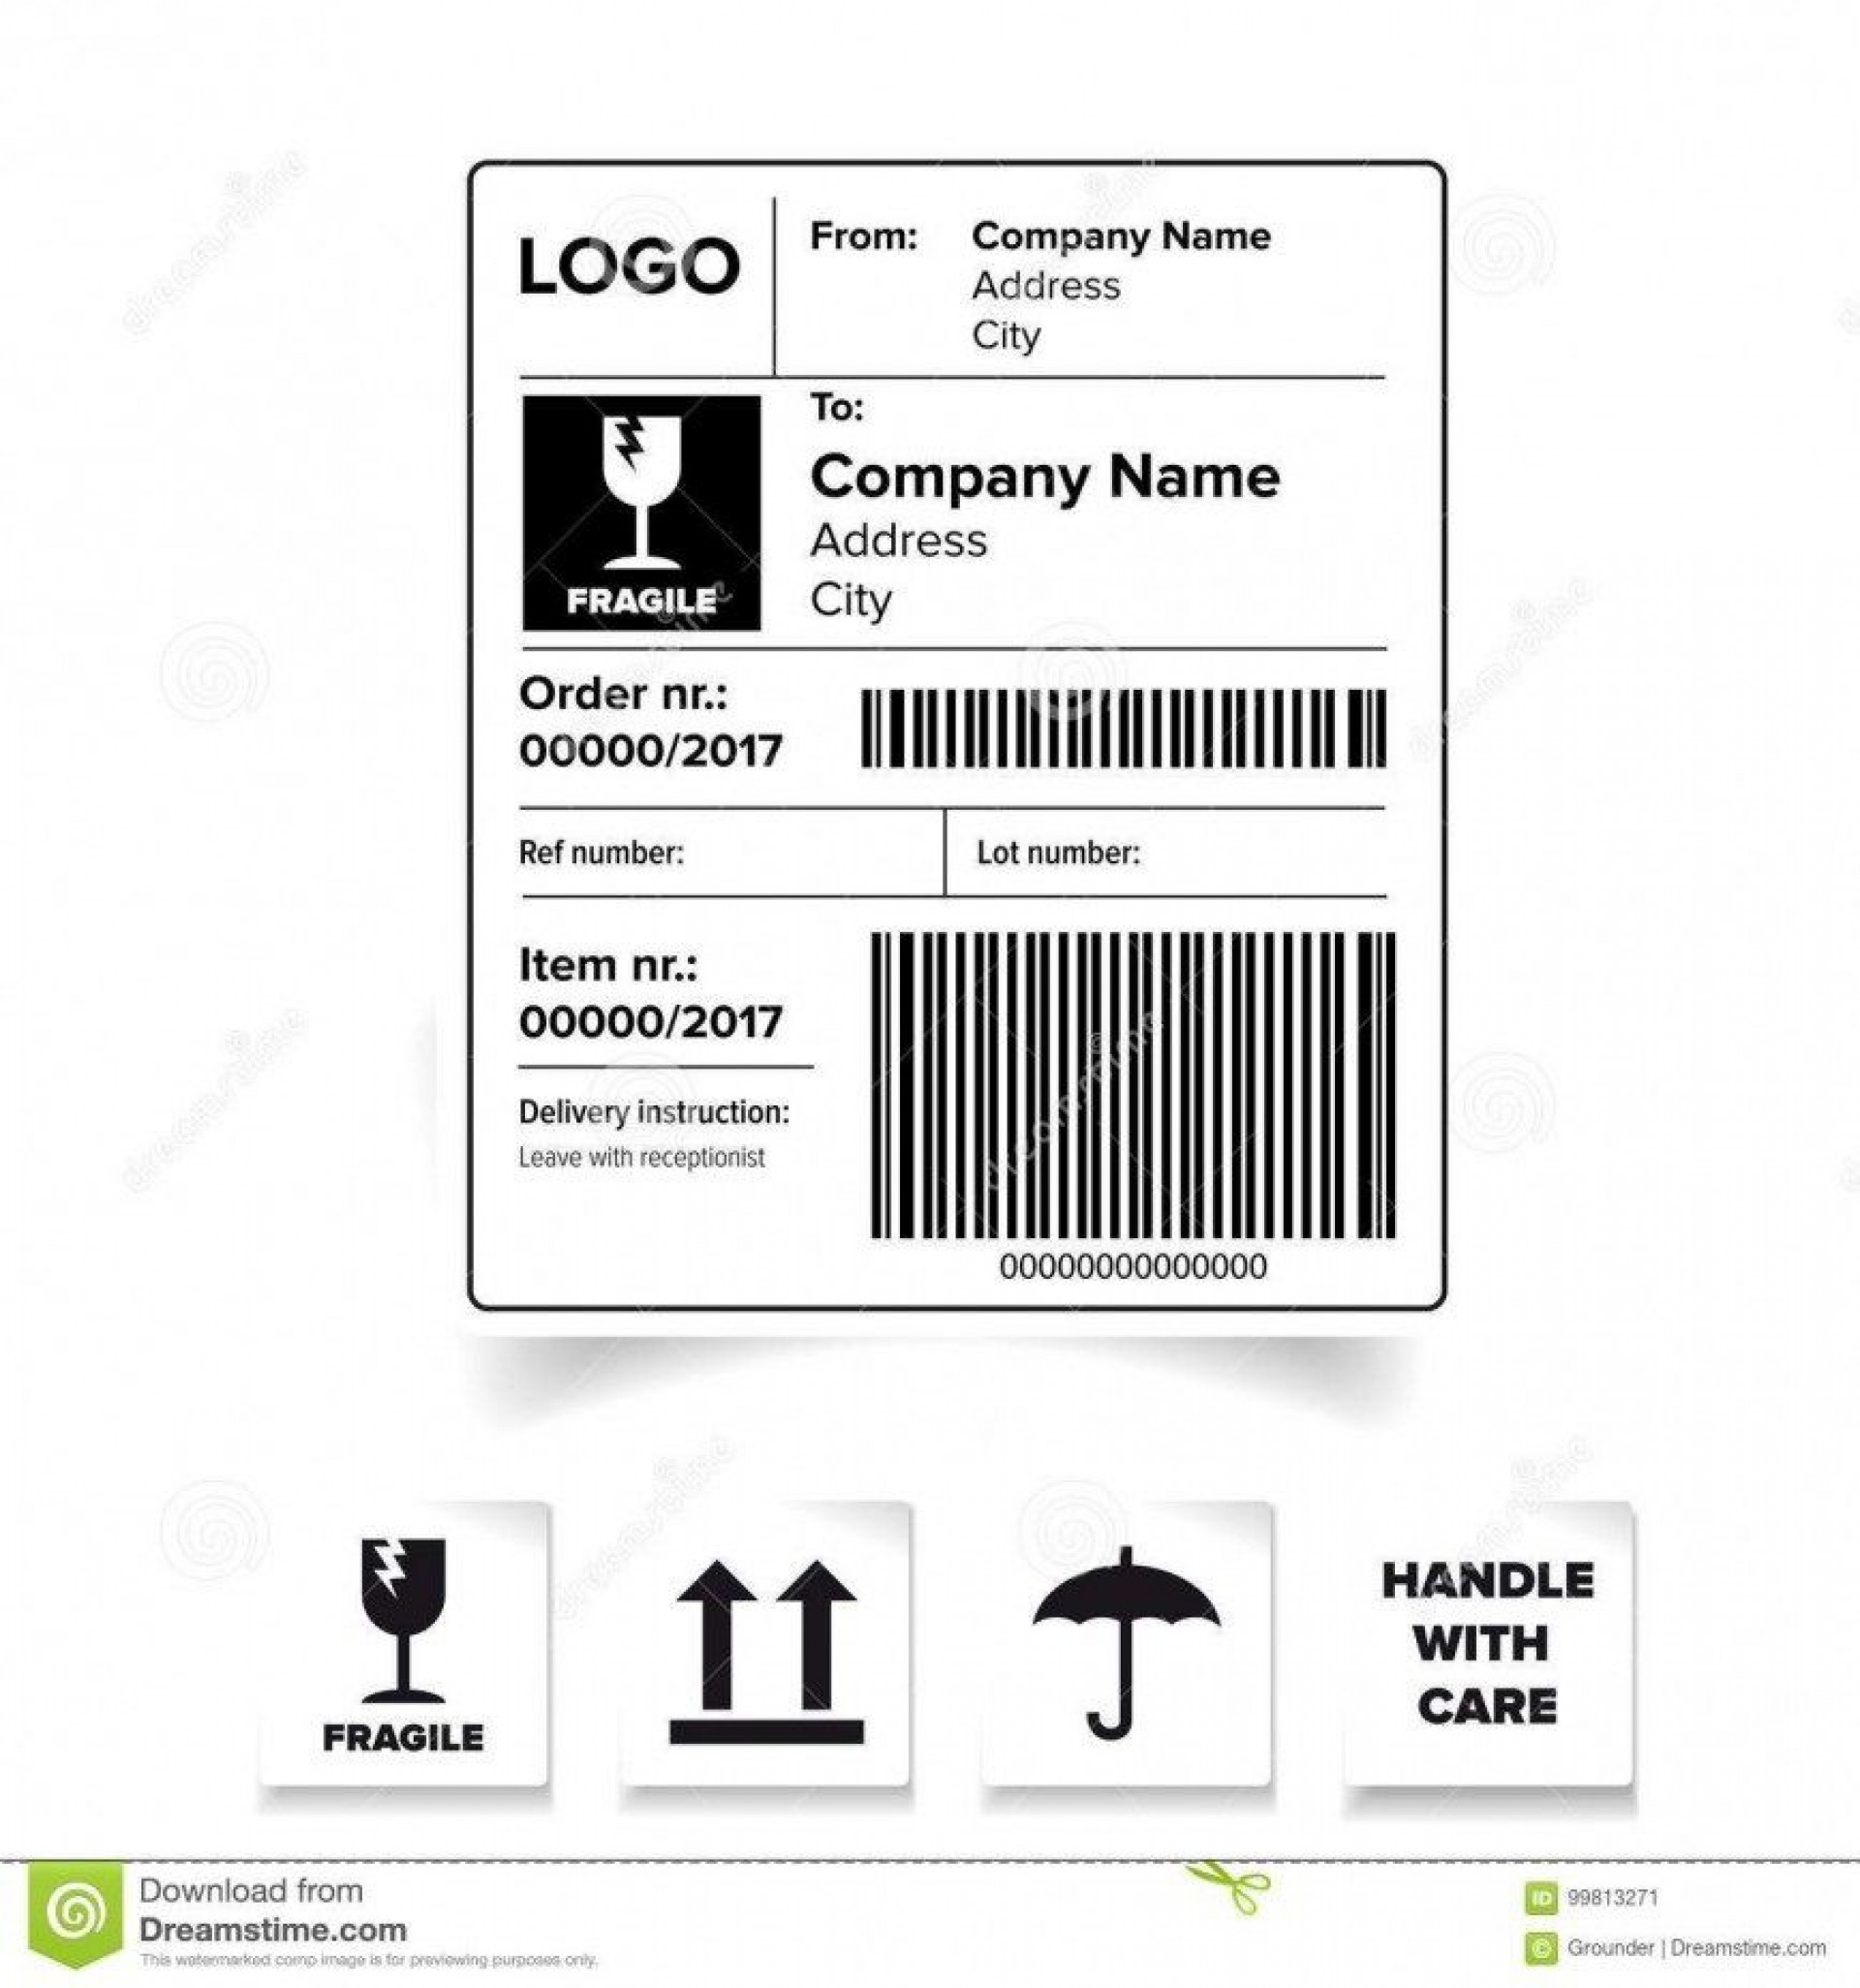 007 Remarkable Free Shipping Label Format High Definition 1920